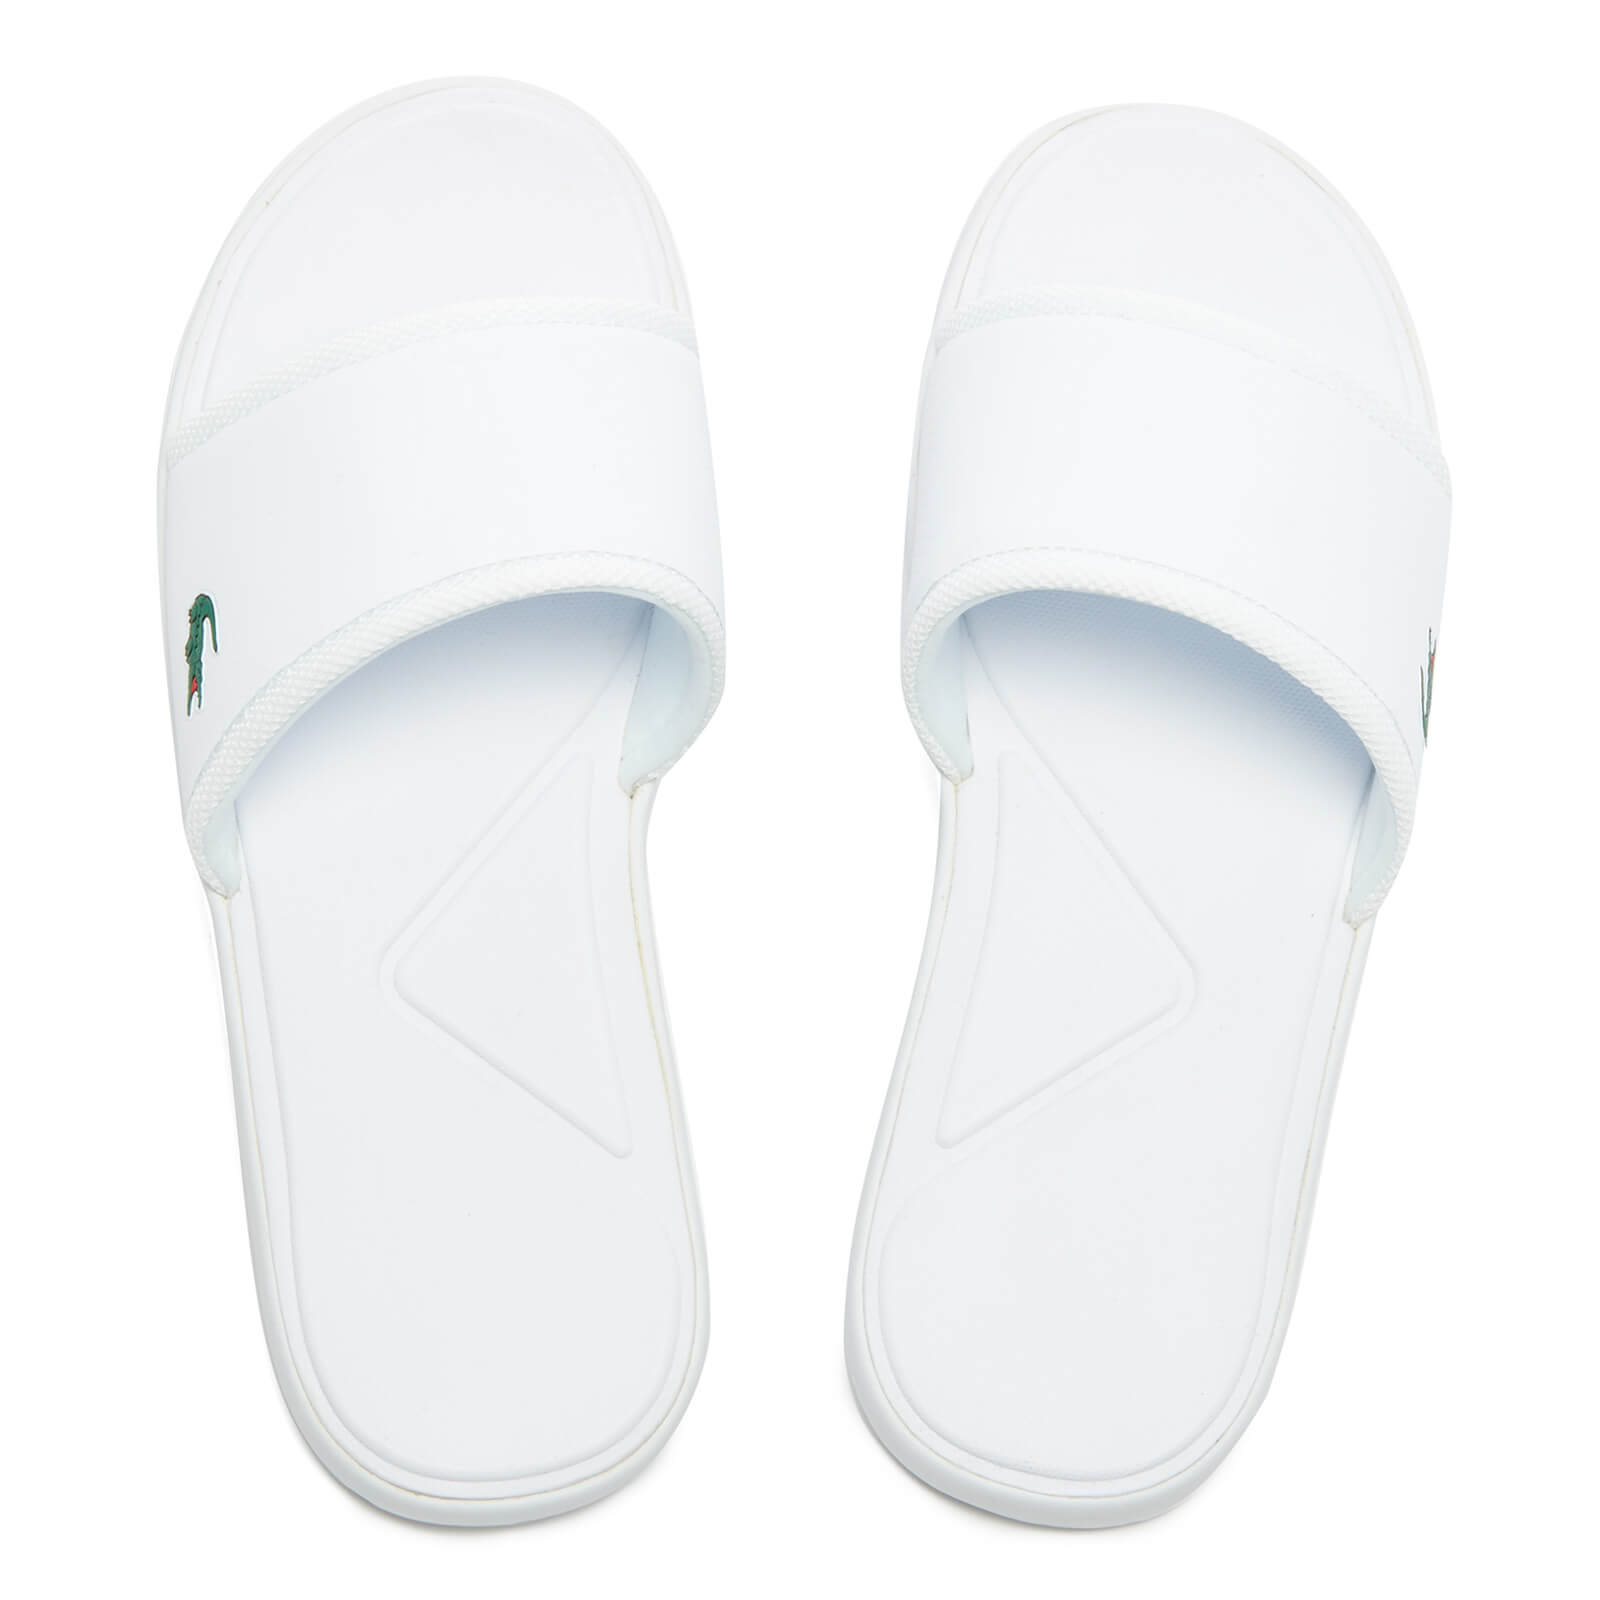 795a271fd3d9 Lacoste Men s L.30 Slide Sport Slide Sandals - White - Free UK Delivery  over £50